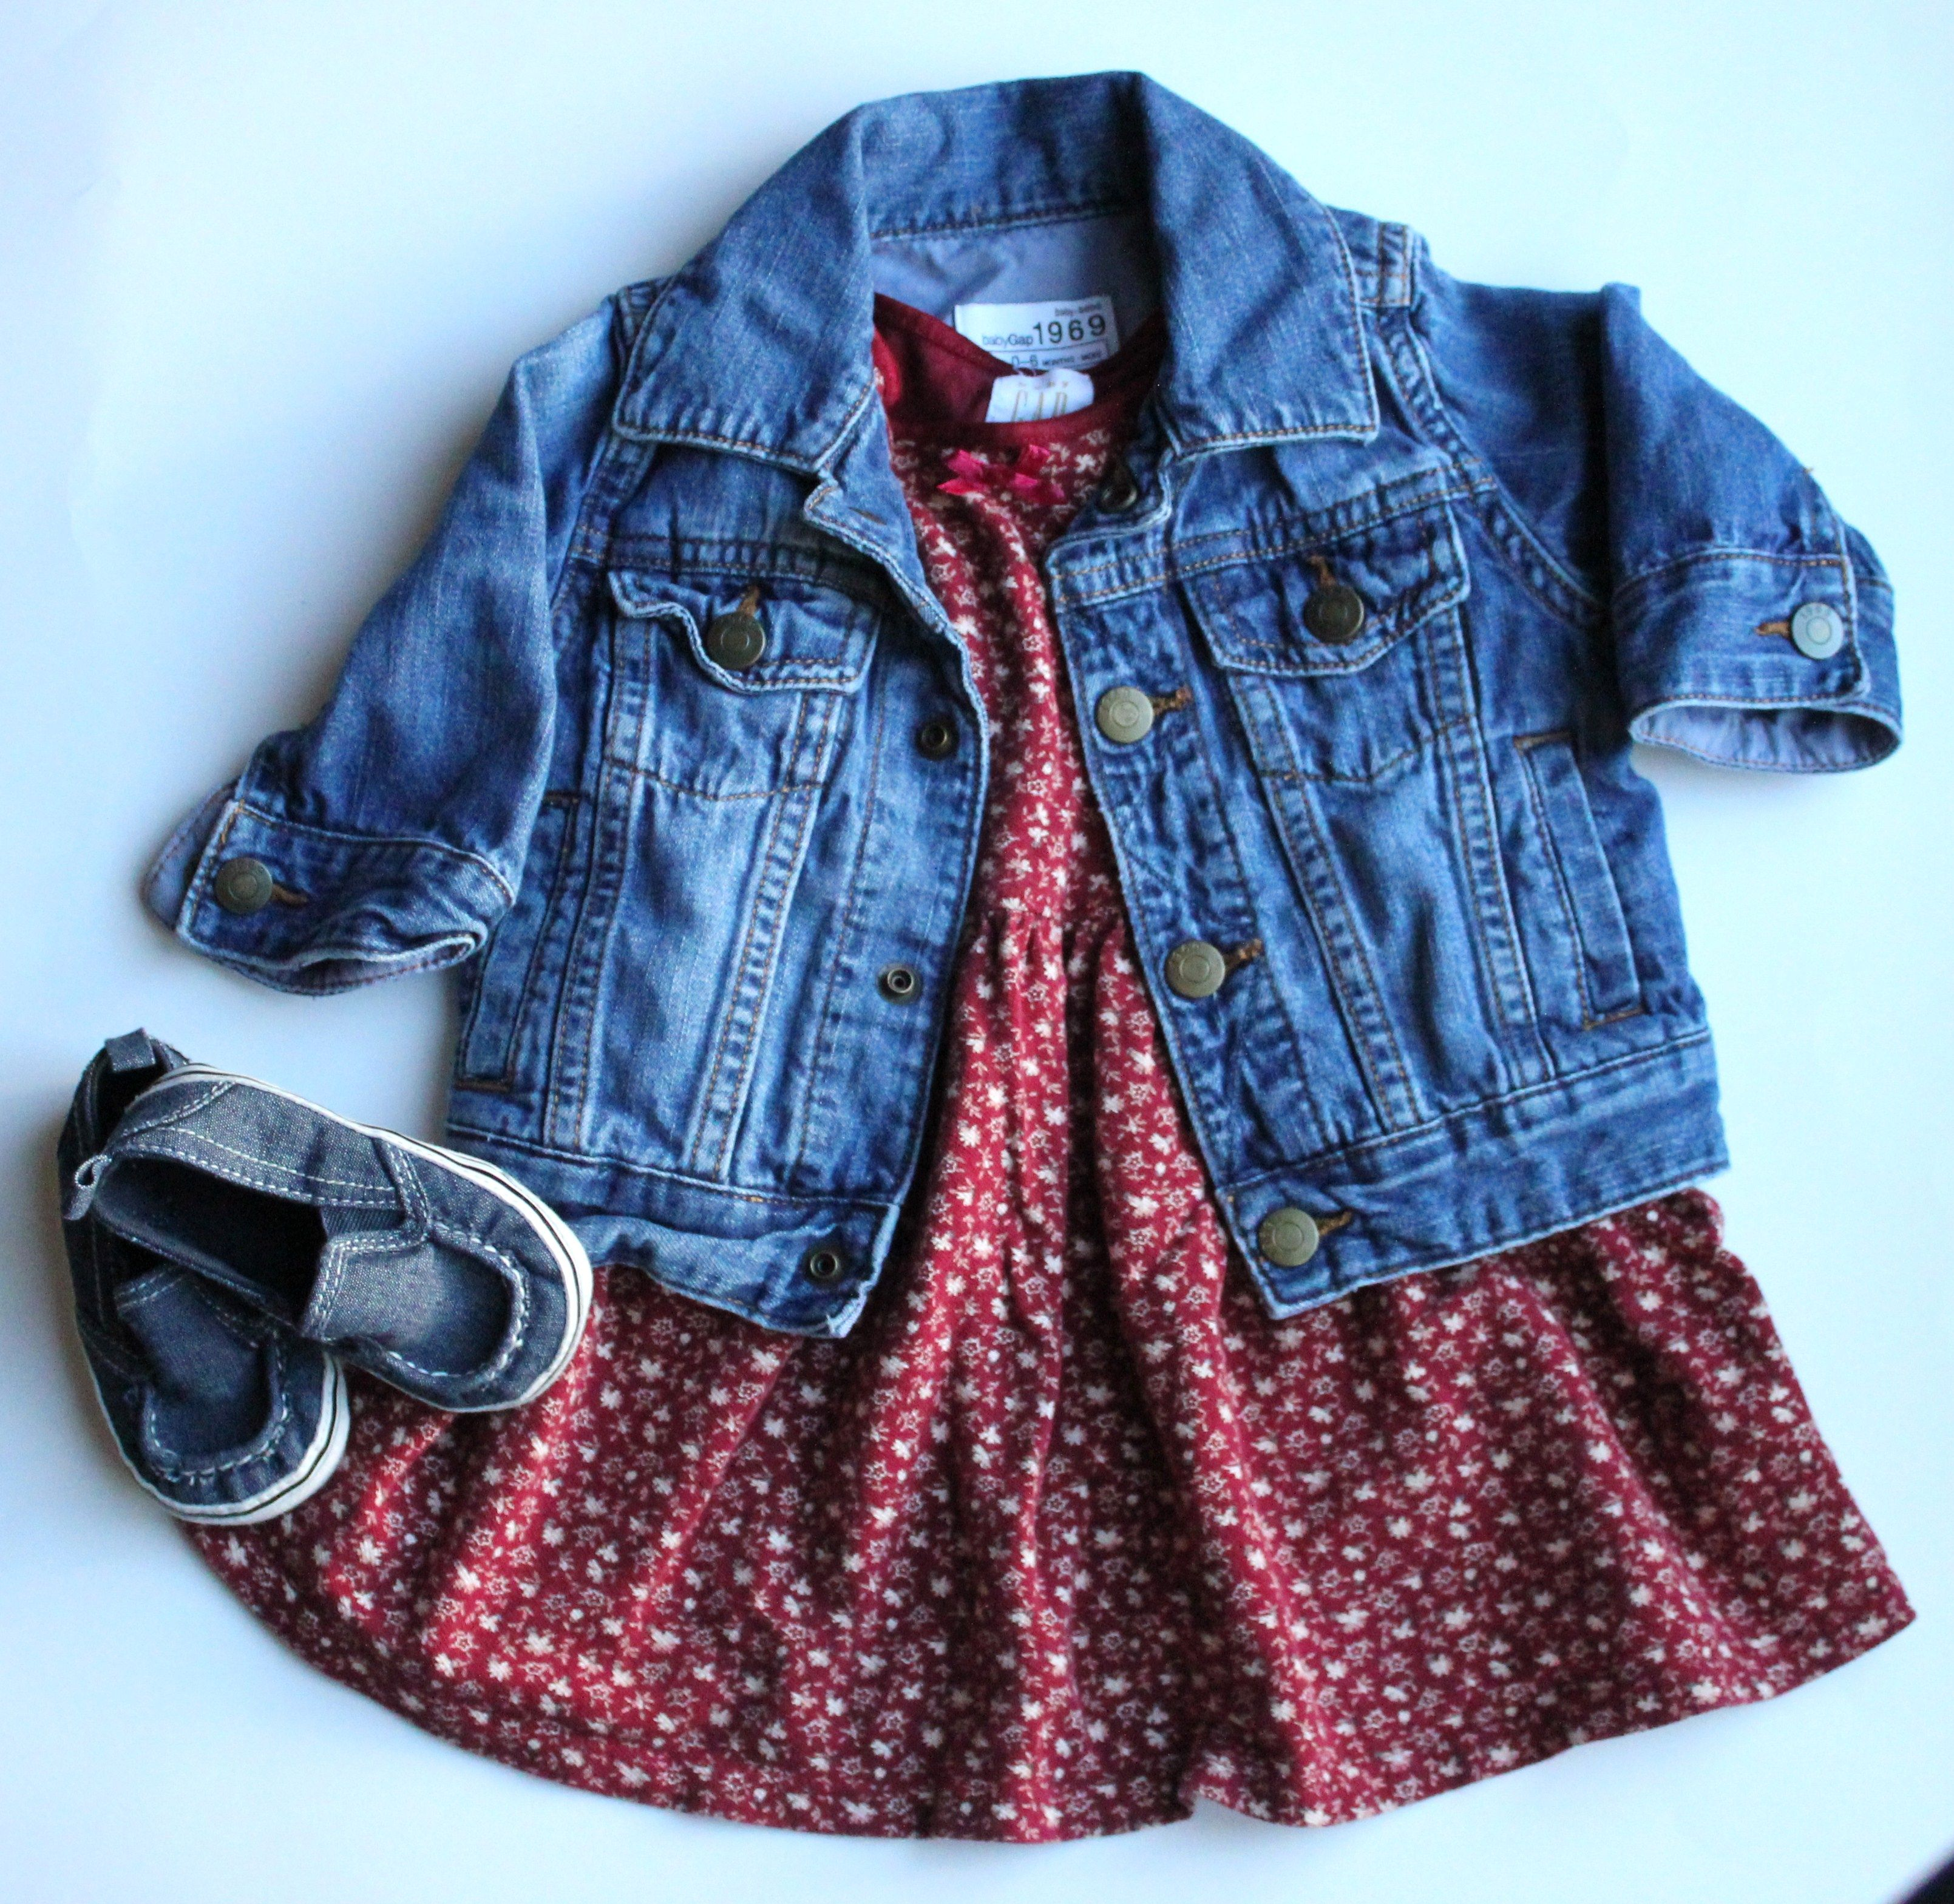 d6d90a26ff5 Baby Girl Outfit. Denim Jacket, Dress And Shoes All Baby Gap. Cute ...